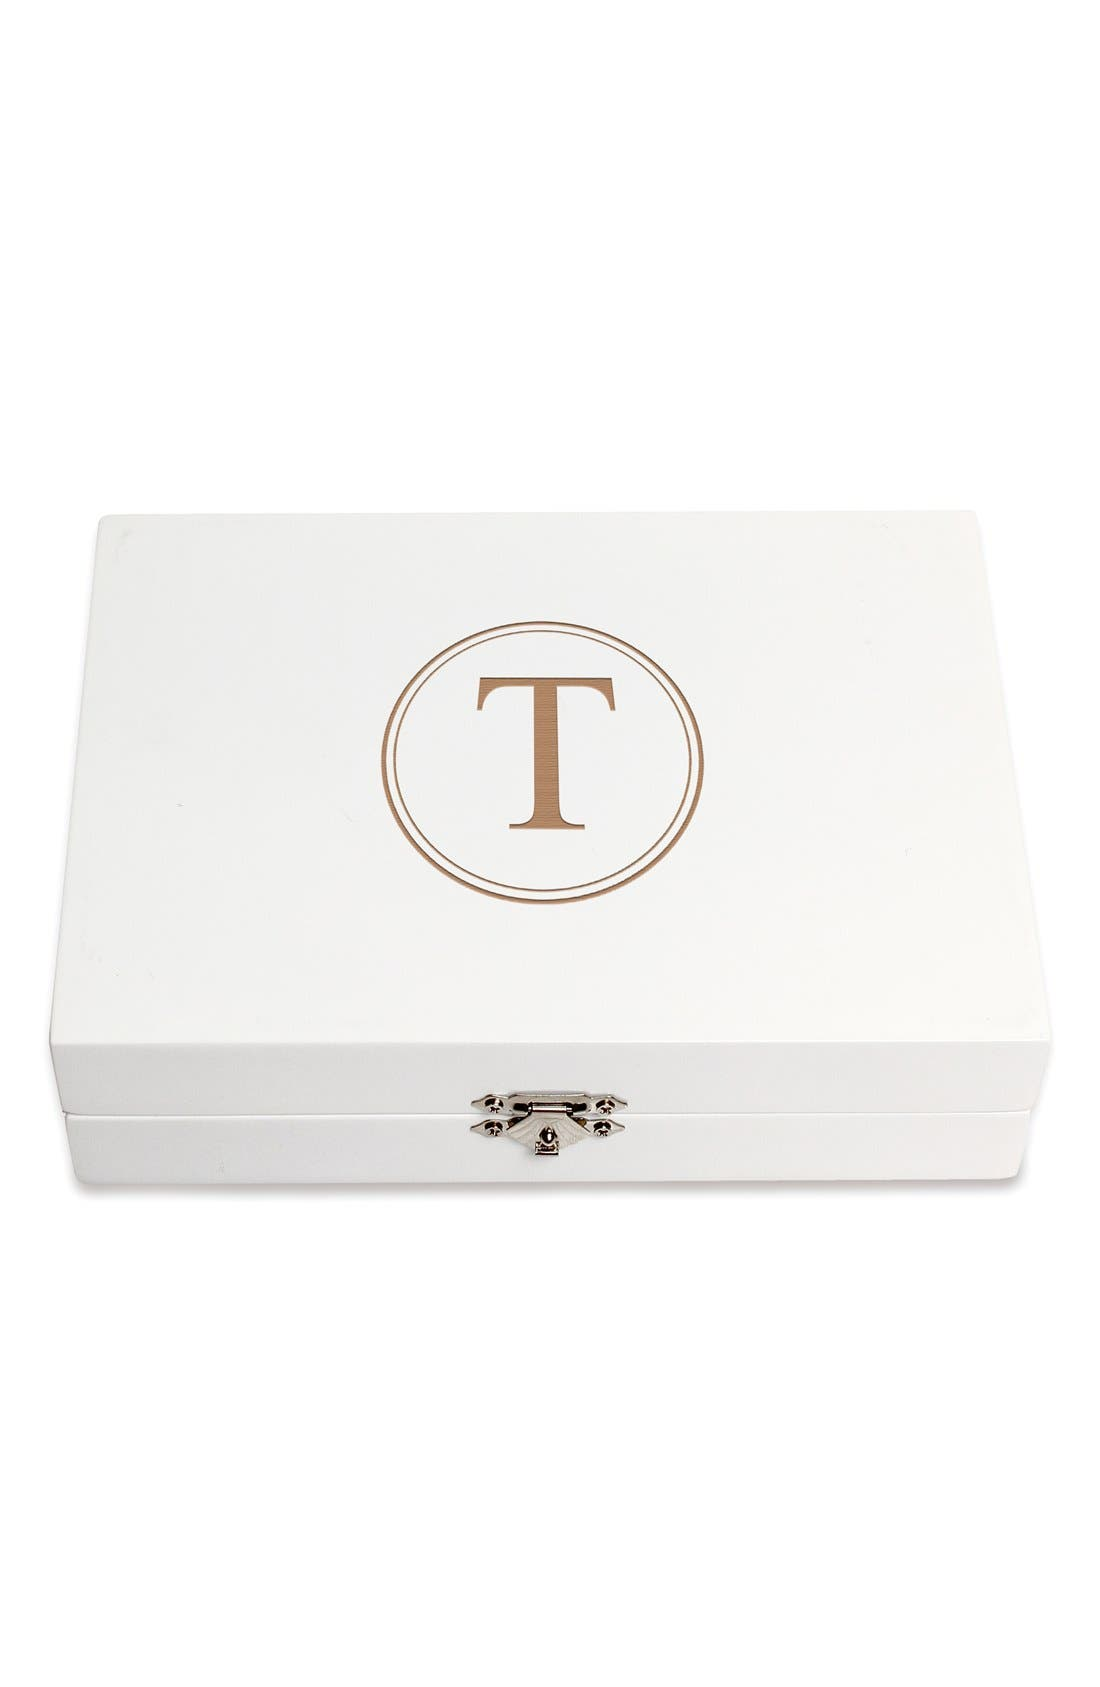 Monogram Wooden Jewelry Box,                             Main thumbnail 49, color,